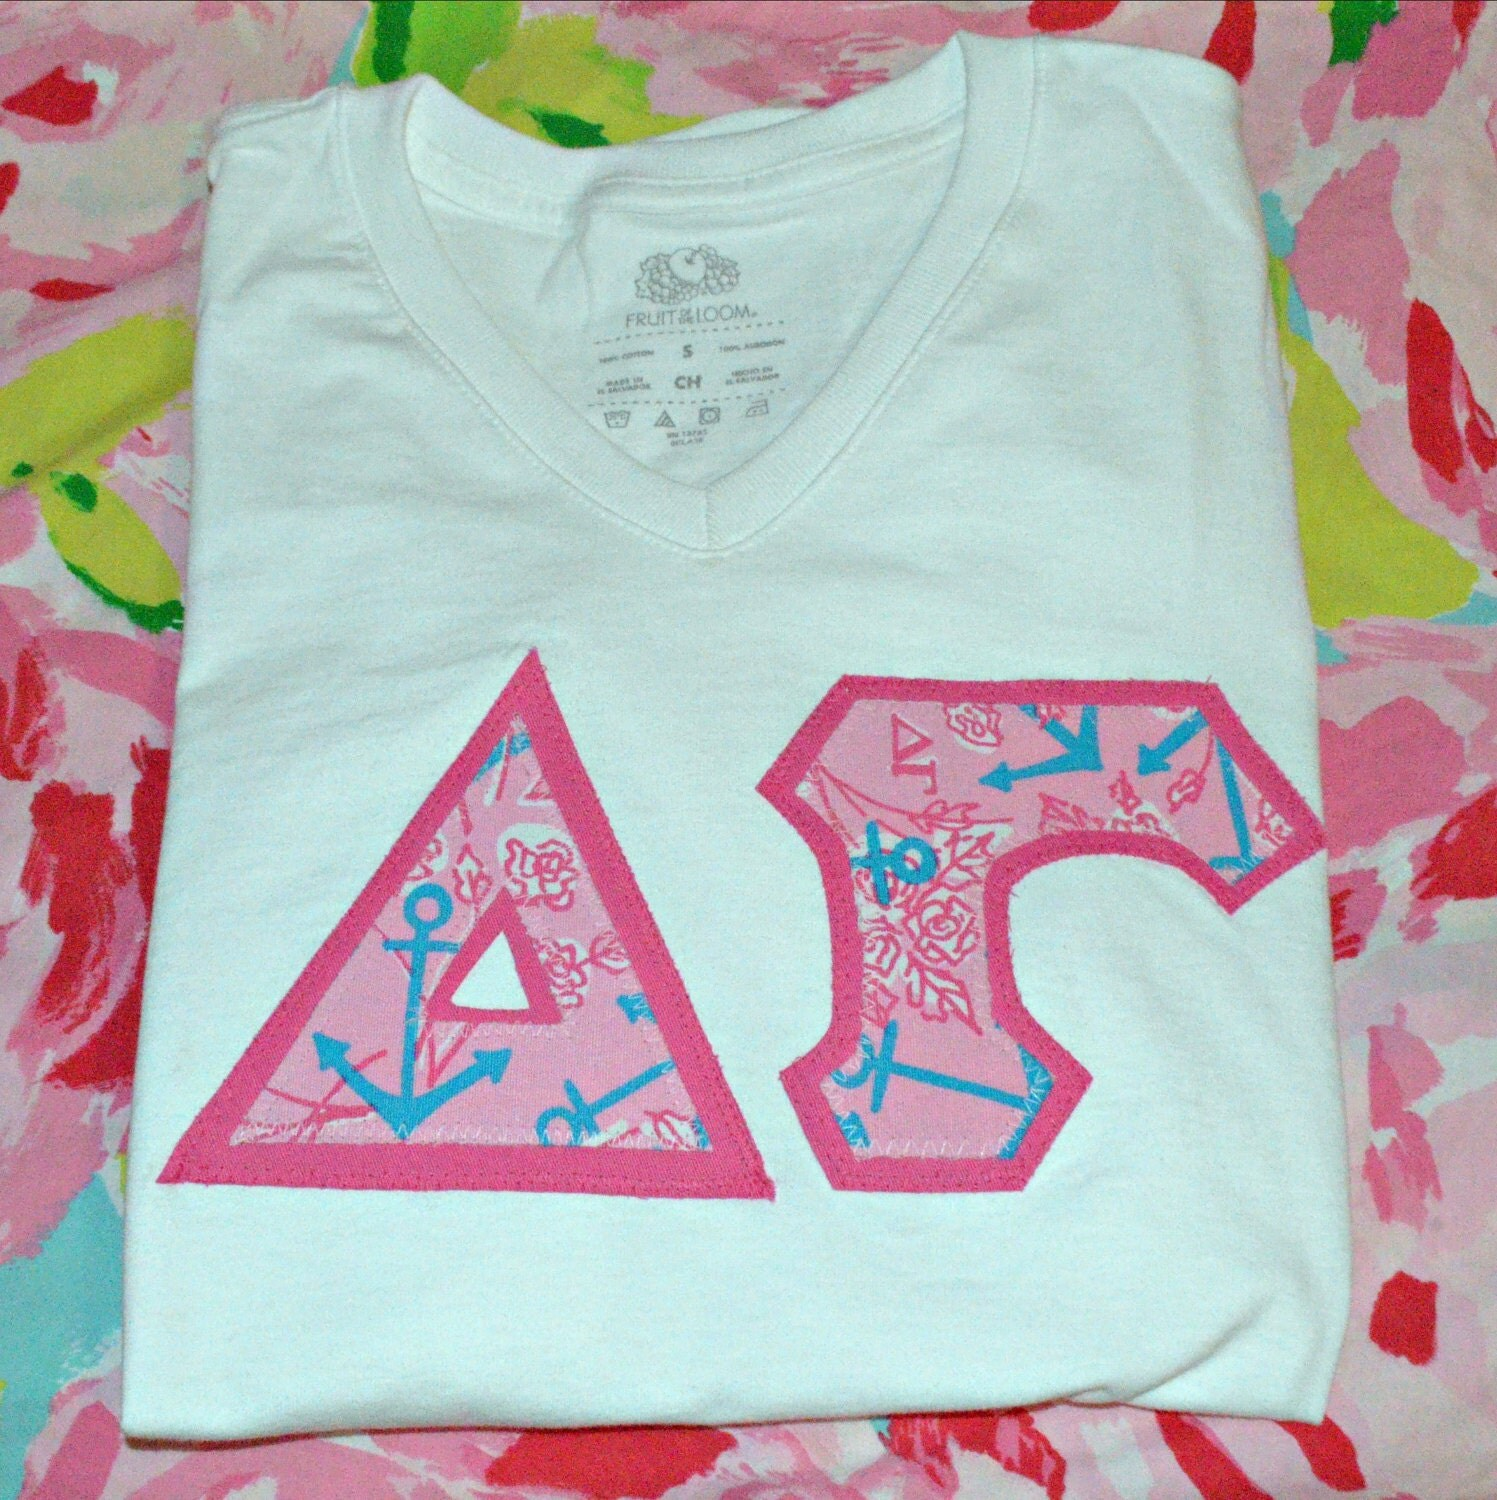 Lilly Pulitzer Sorority Letters Delta Gamma Lilly Pulitzer Letter Tee Shirt